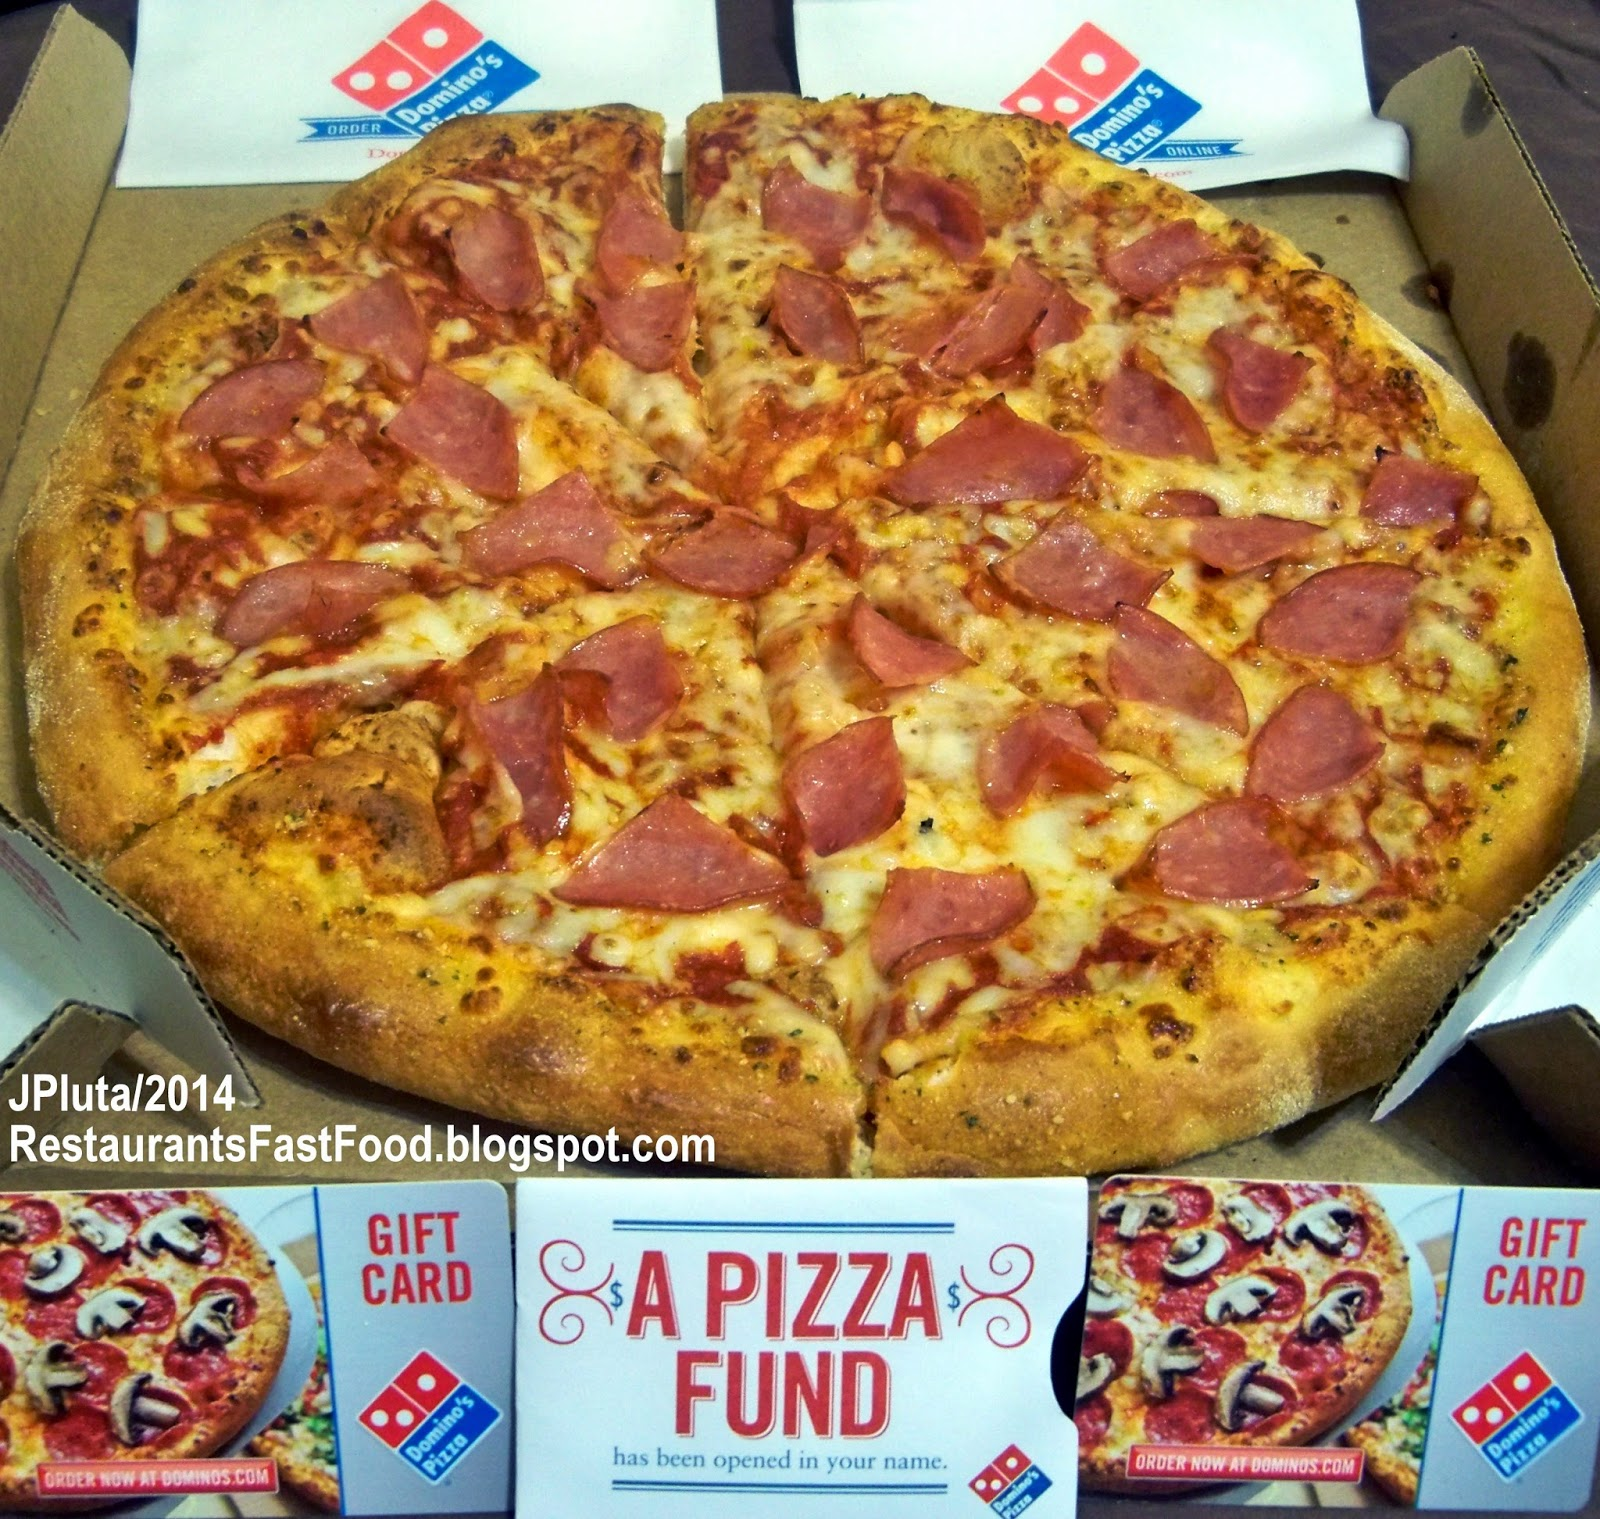 Dominos Pizza Menu Usa >> PEMBROKE PINES FLORIDA Broward Photo Restaurant Hospital Attorney Church Bank Fire Dept. Store FLA.